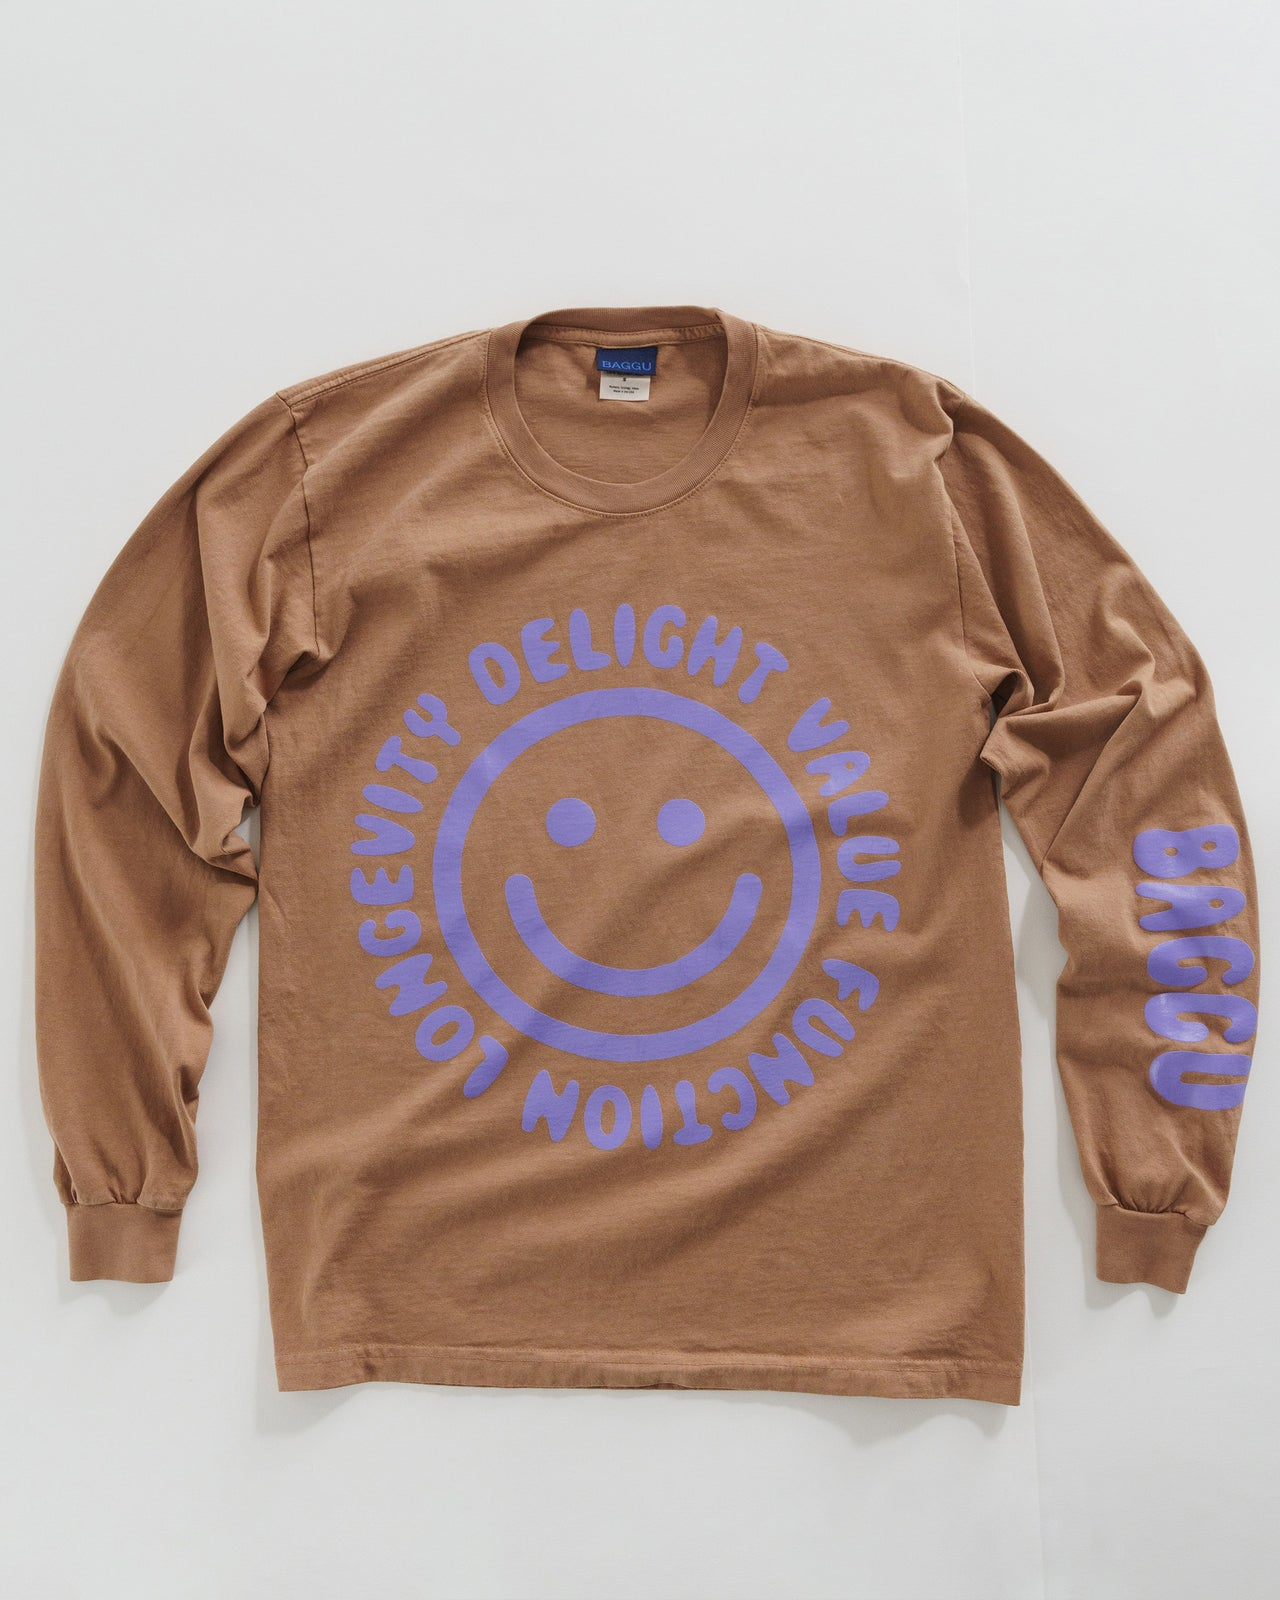 Long Sleeve Tee - Happy